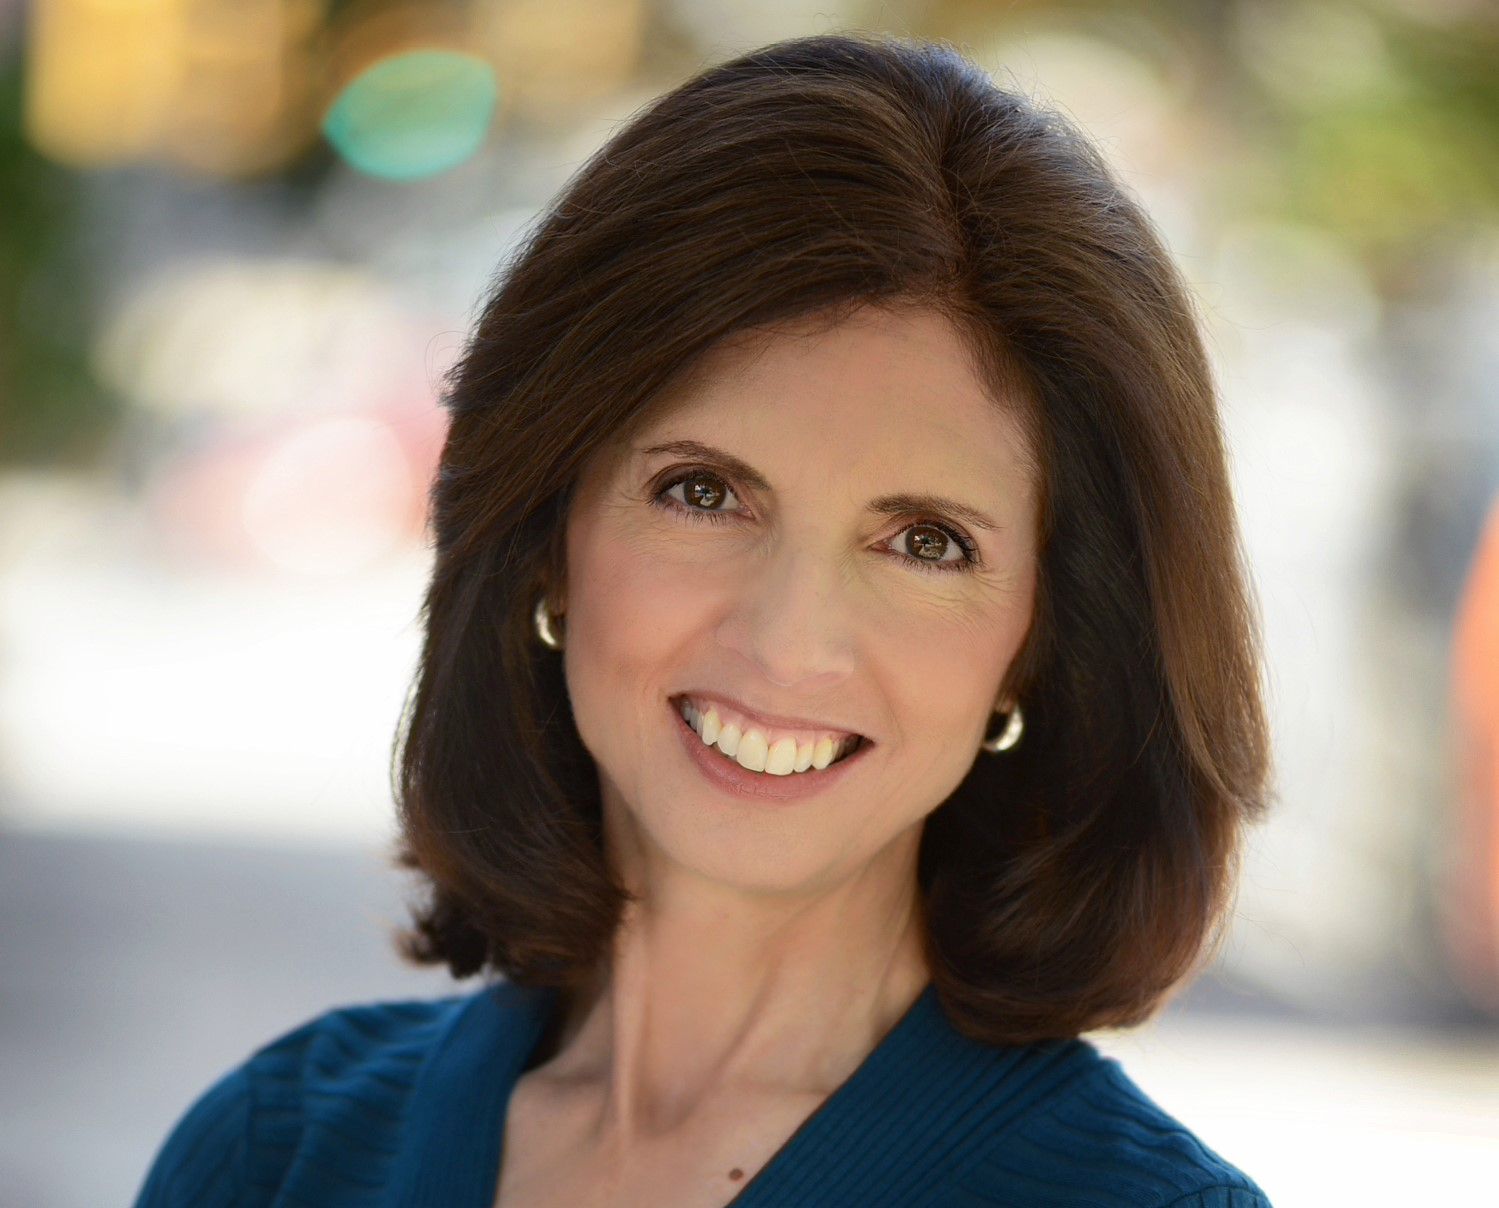 Haverford Resident, Corporate Exec Launches Book to Inspire Girls to Pursue Science Careers